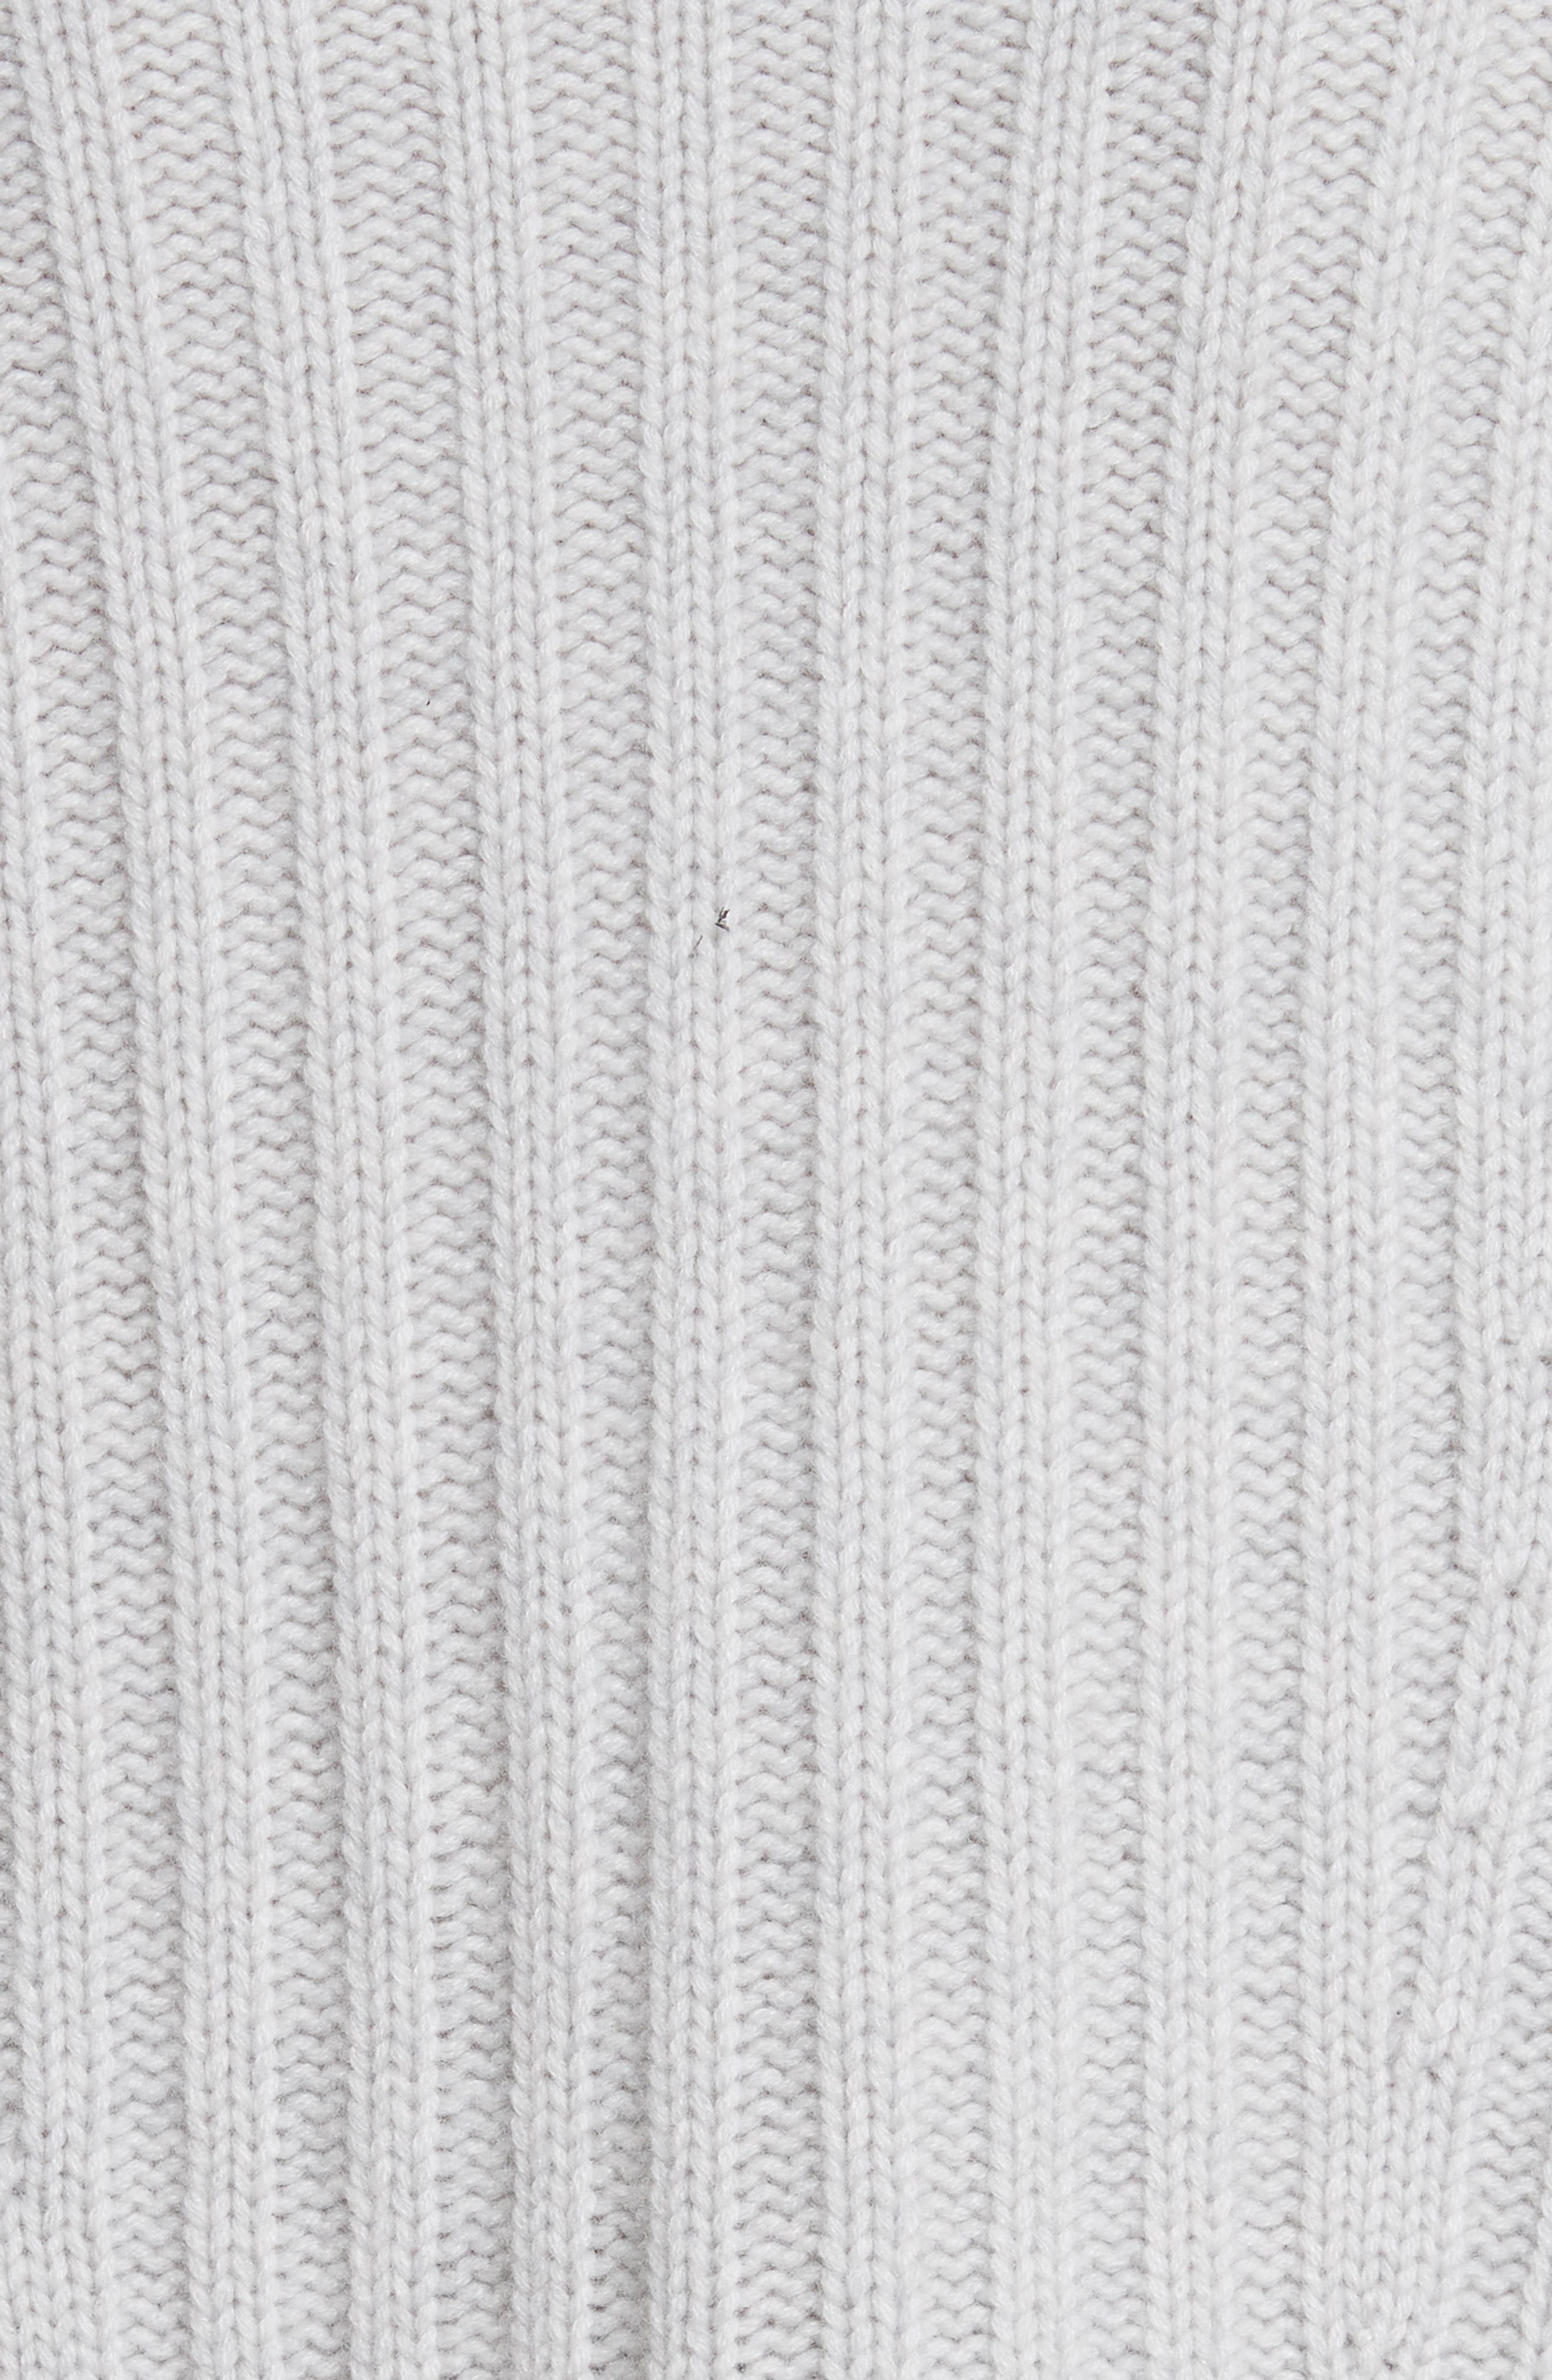 Ribbed Wool & Cashmere Sweater,                             Alternate thumbnail 5, color,                             Light Heather Grey